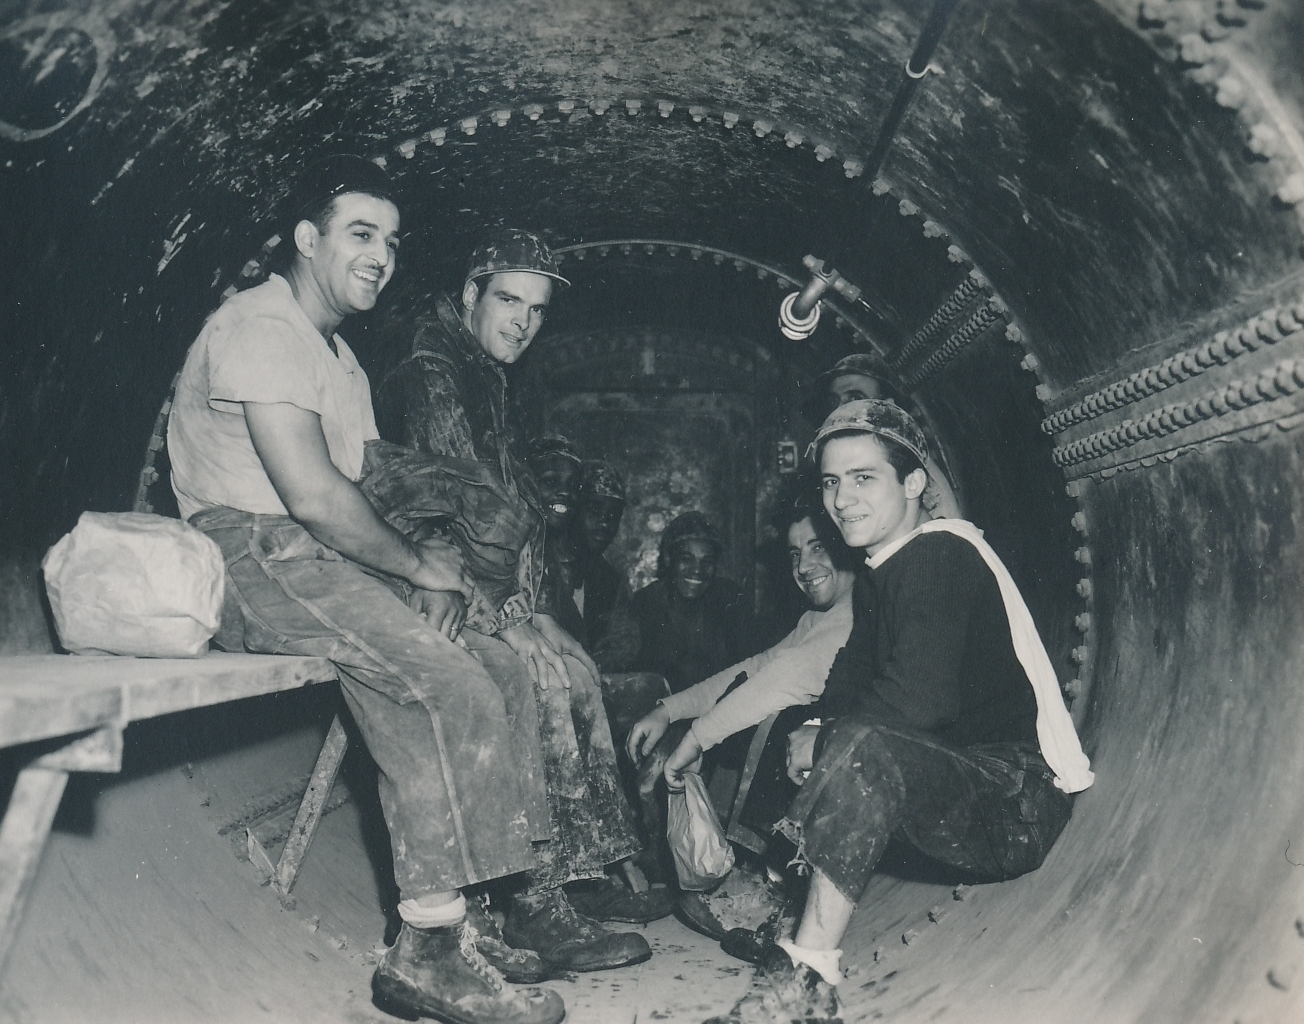 PWA funded good-paying jobs, and good-paying jobs created smiles – it wasn't rocket science. Photo shows a PWA-financed subway project in Chicago. Photo courtesy of the National Archives (June 1940).